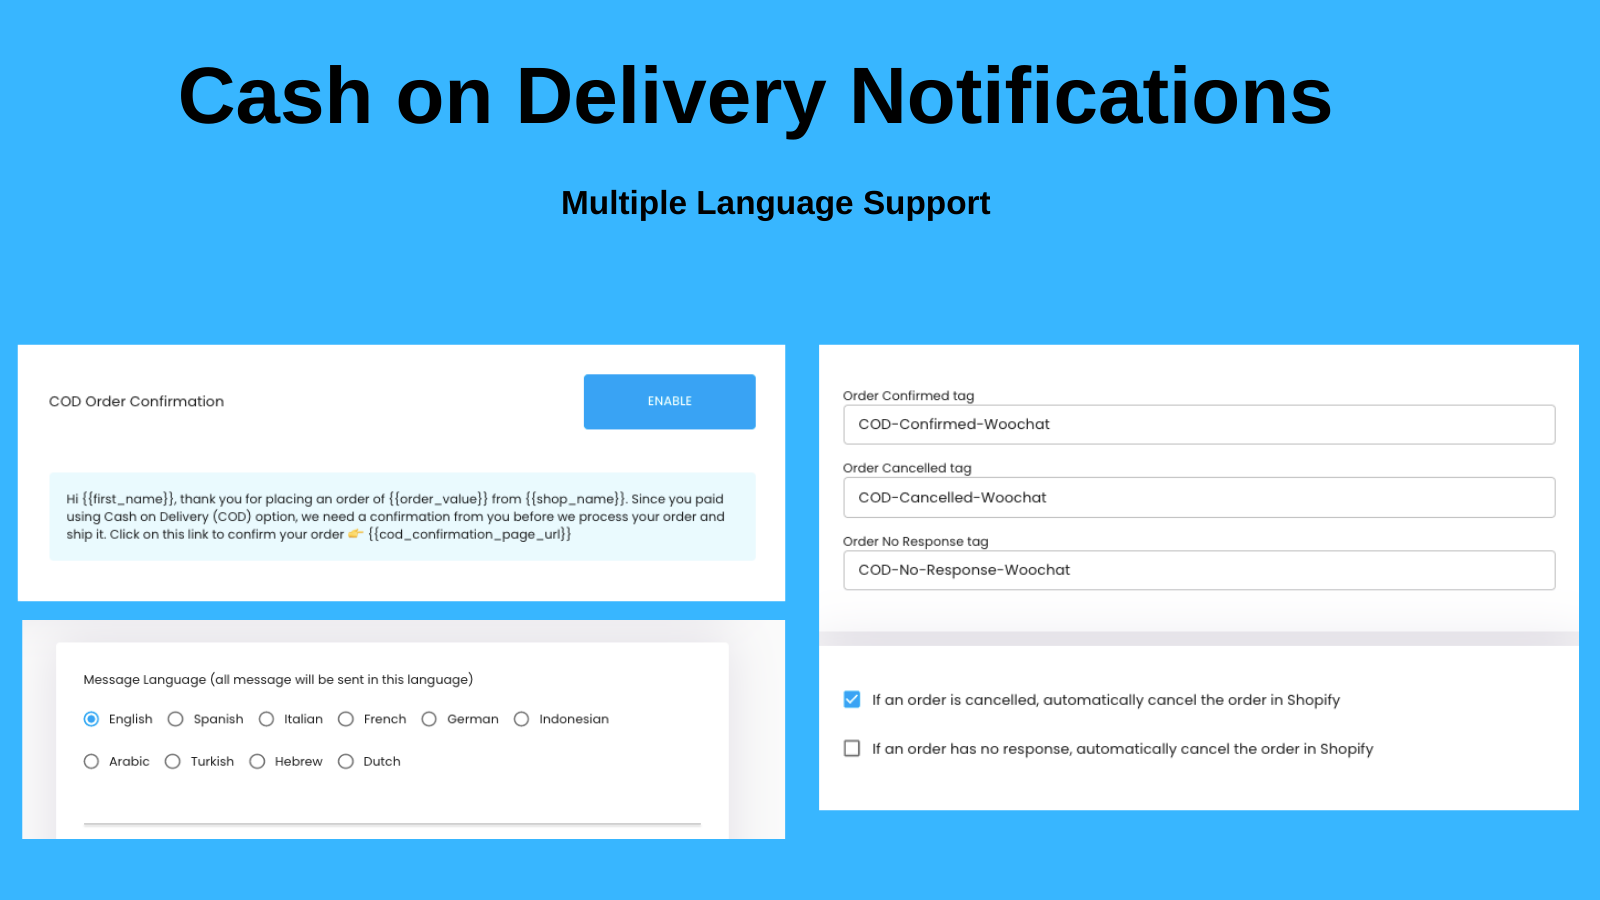 Cash on Delivery Notifications